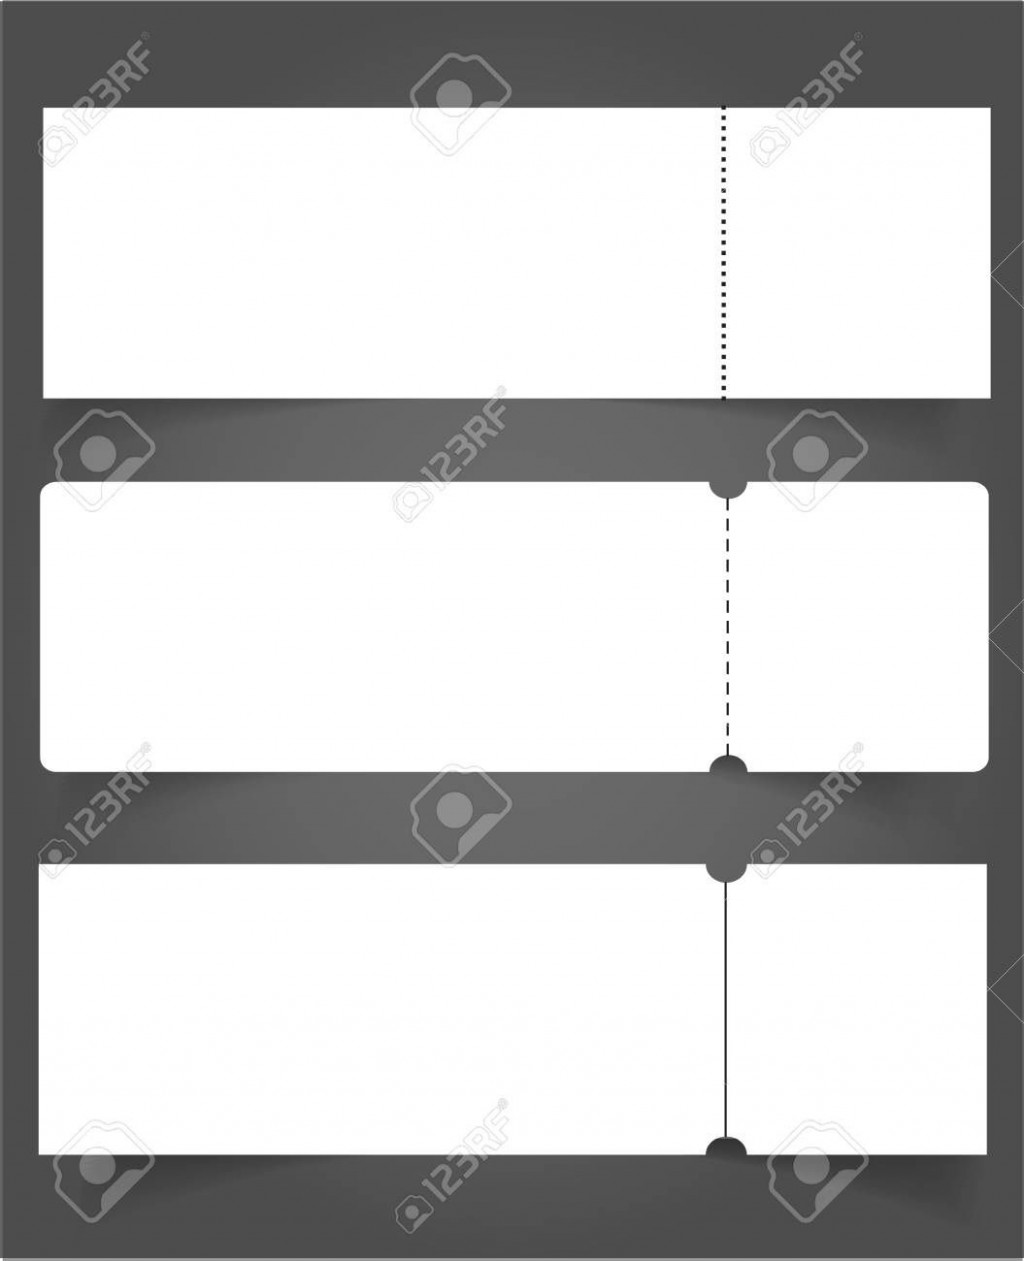 001 Outstanding Free Event Ticket Template Printable Photo Large